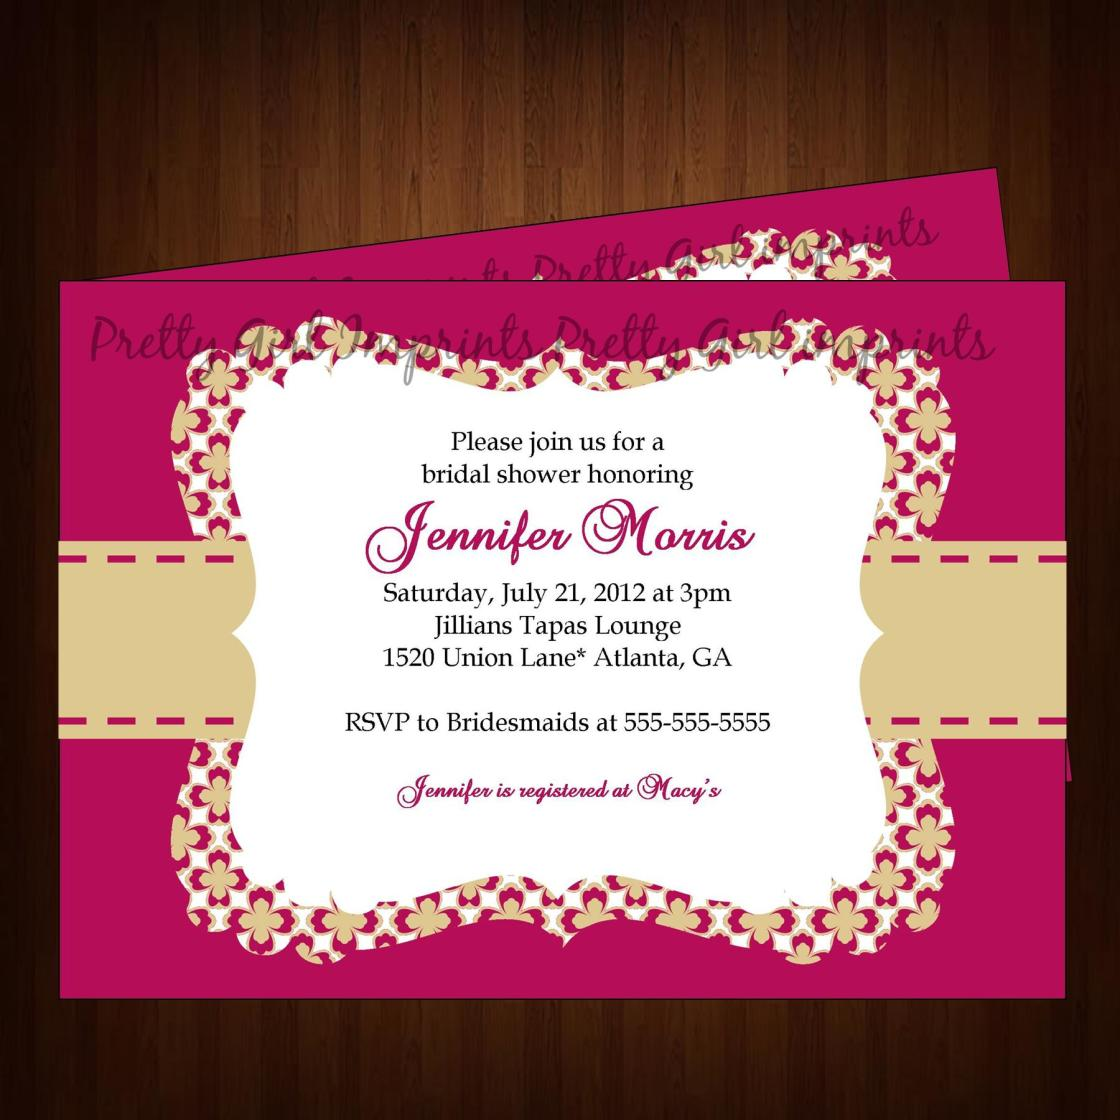 Sending Wedding Invitations Post Office: Jacquie Lawson Cards Thanksgiving